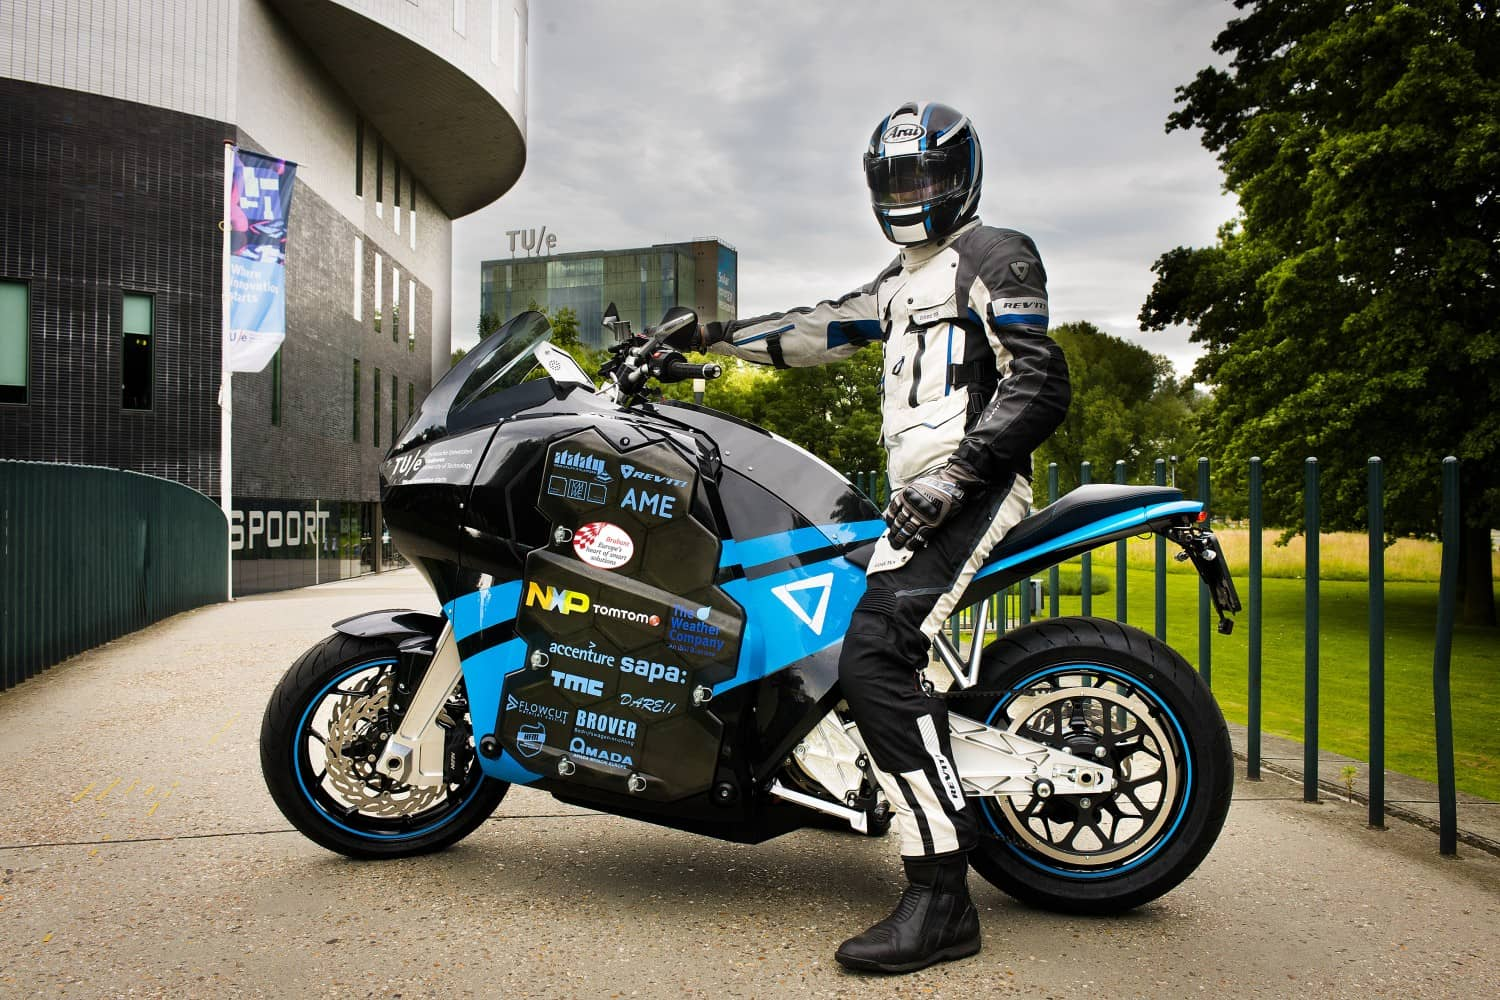 Storm eindhoven rides into north america nfia for Lonne electric motors usa